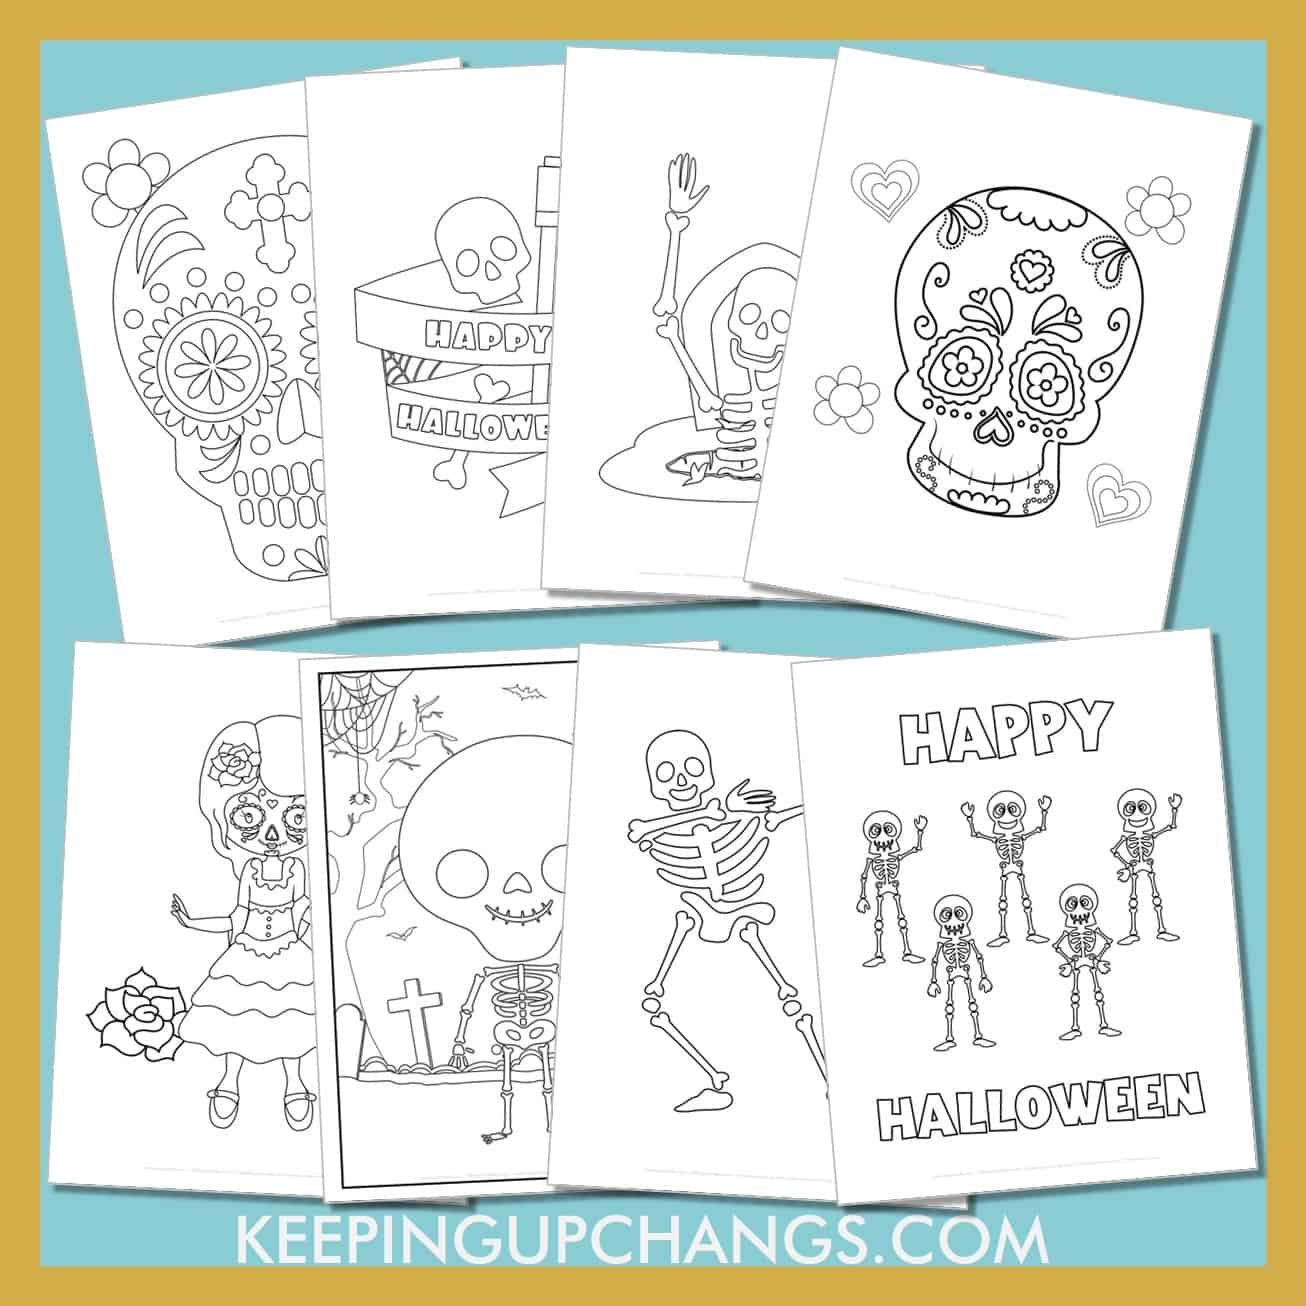 skeleton colouring sheets including realistic anatomy, cute, friendly halloween sugar skulls and bones and more.